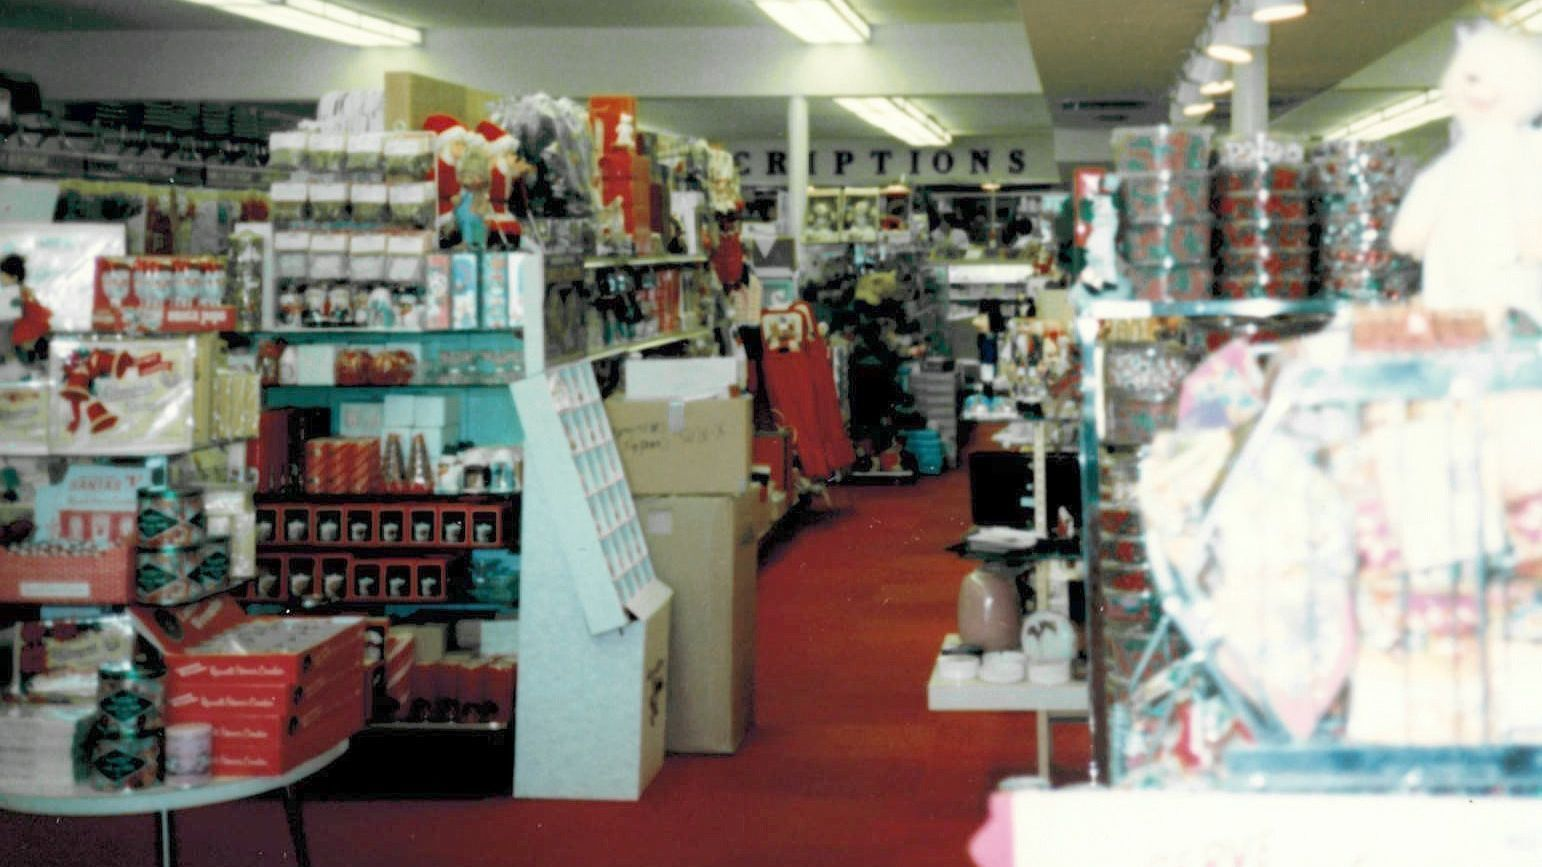 Burns Drugs, shown in the late '80s, was more than a retail store to La Jollans.